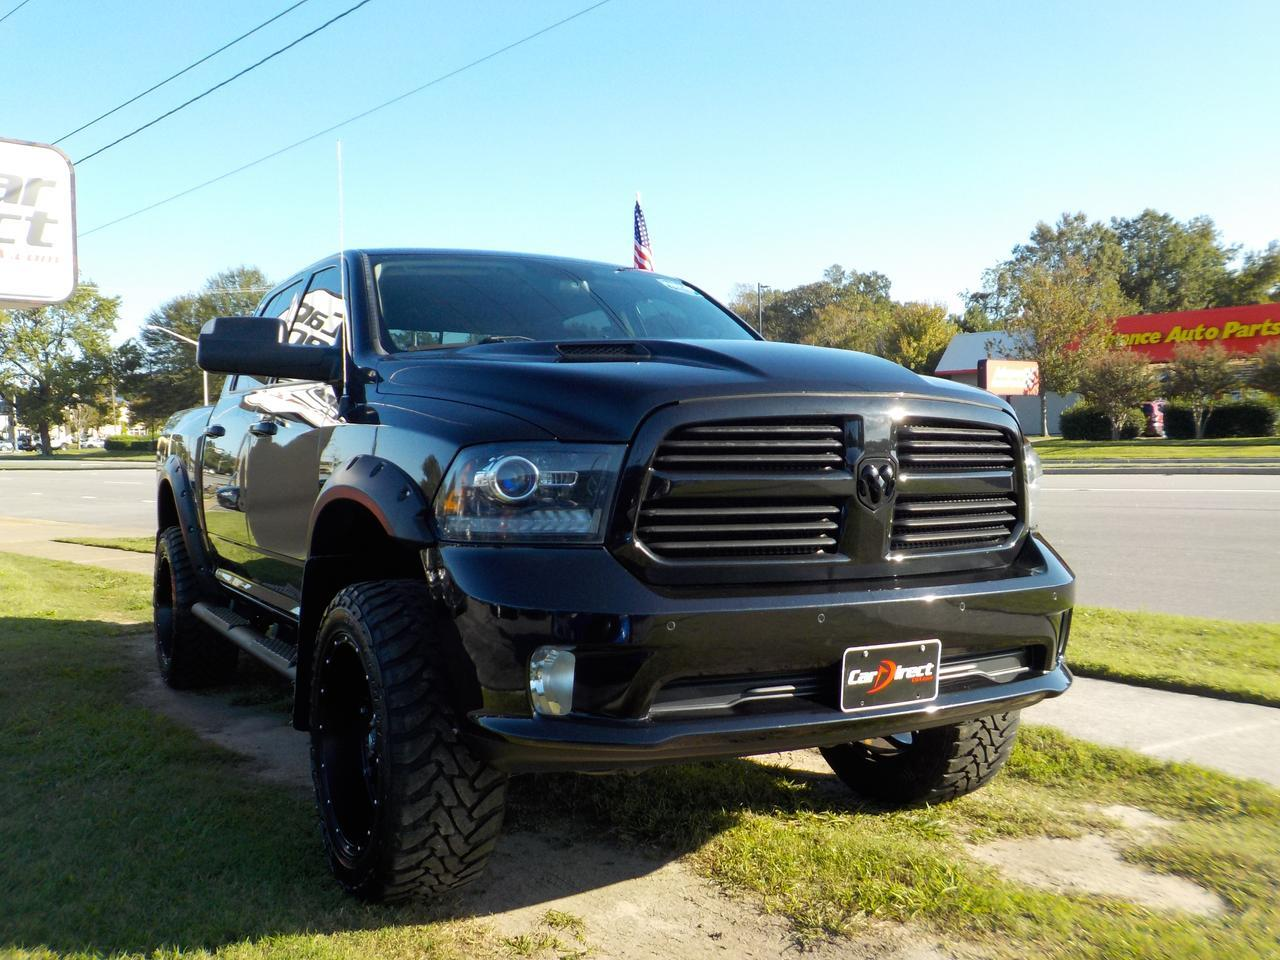 2016 DODGE RAM 1500 4X4 CREW CAB SPORT, HEATED SEATS, LEATHER, TOW PKG, BACKUP CAM, REMOTE START, ONLY 46K MILES!! Virginia Beach VA